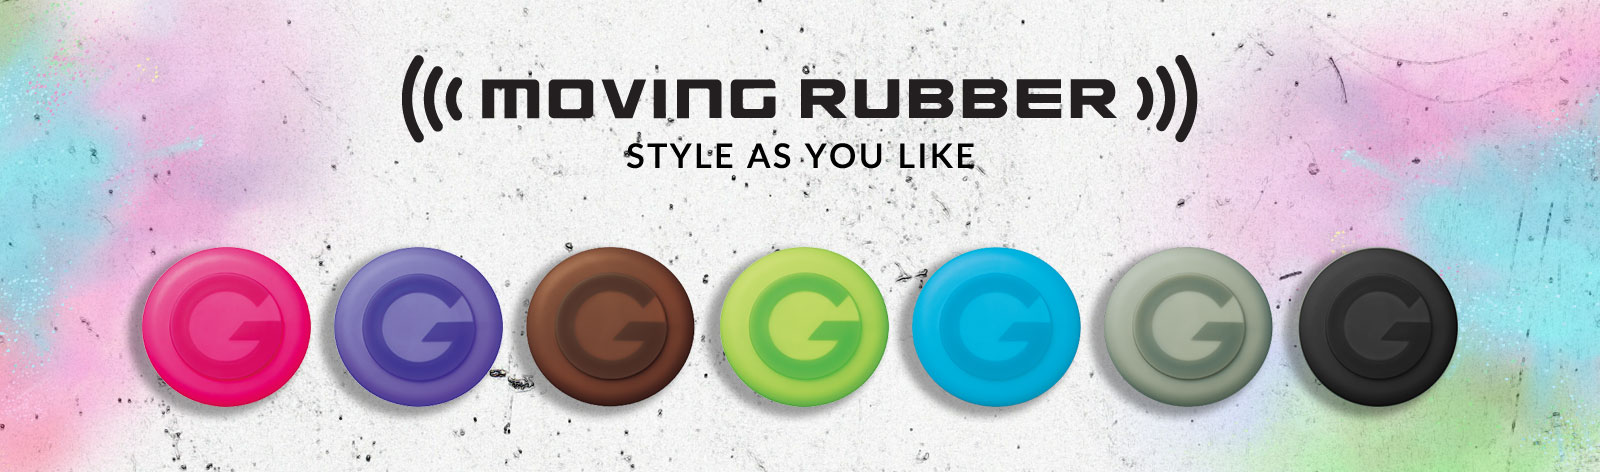 MOVING RUBBER